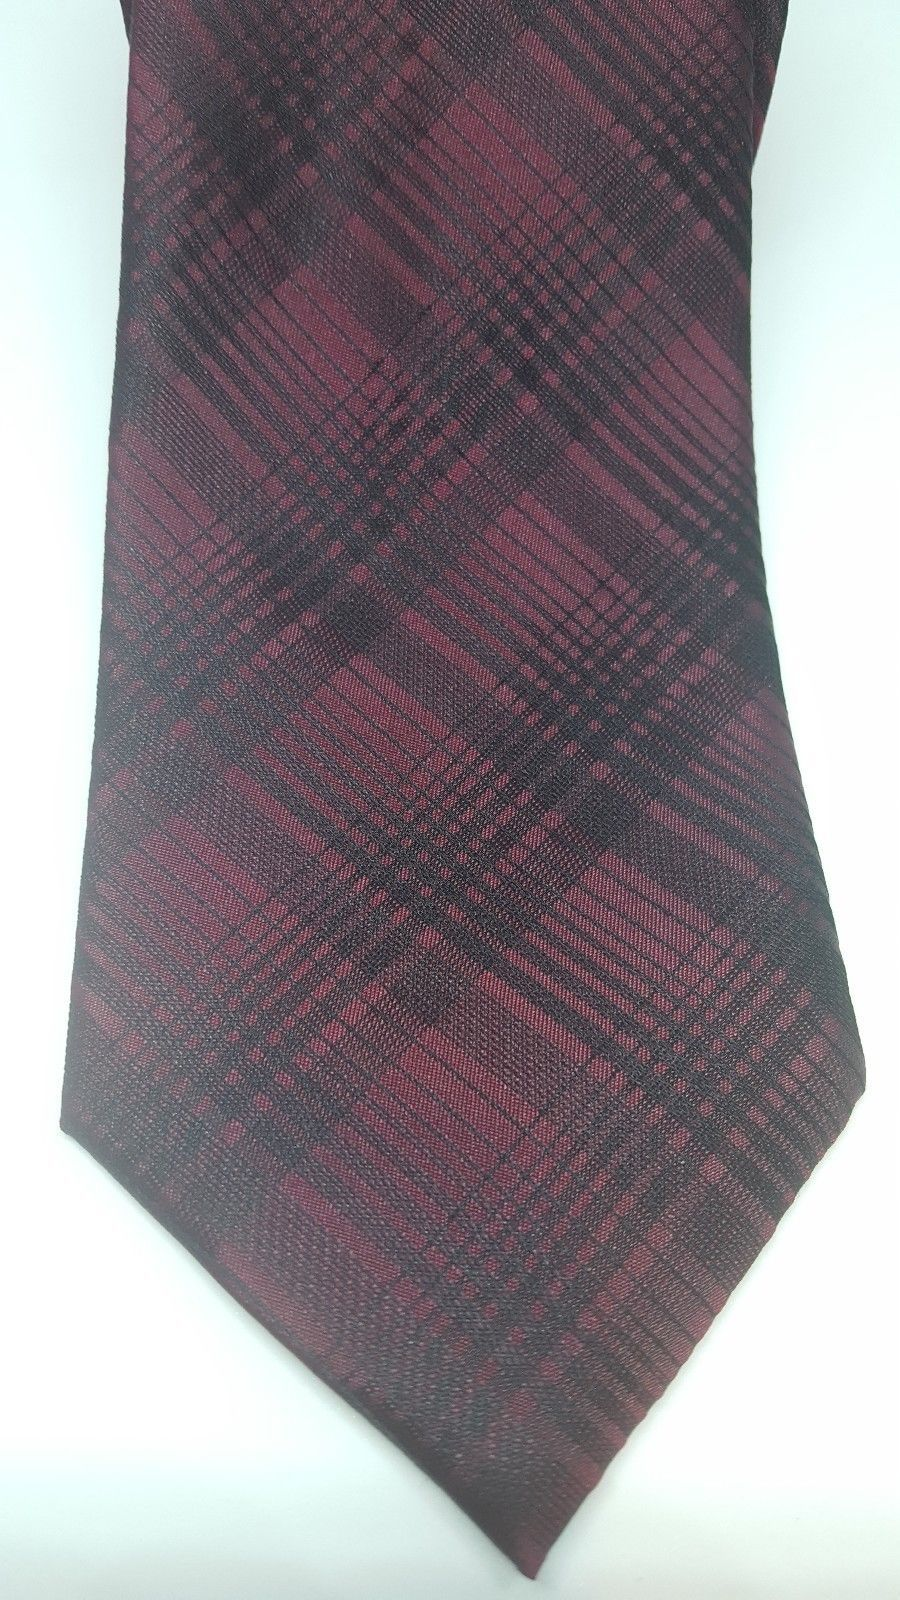 NEW Reaction Kenneth Cole Men's Classic Neck Tie Dressy Grid Burgundy/Black